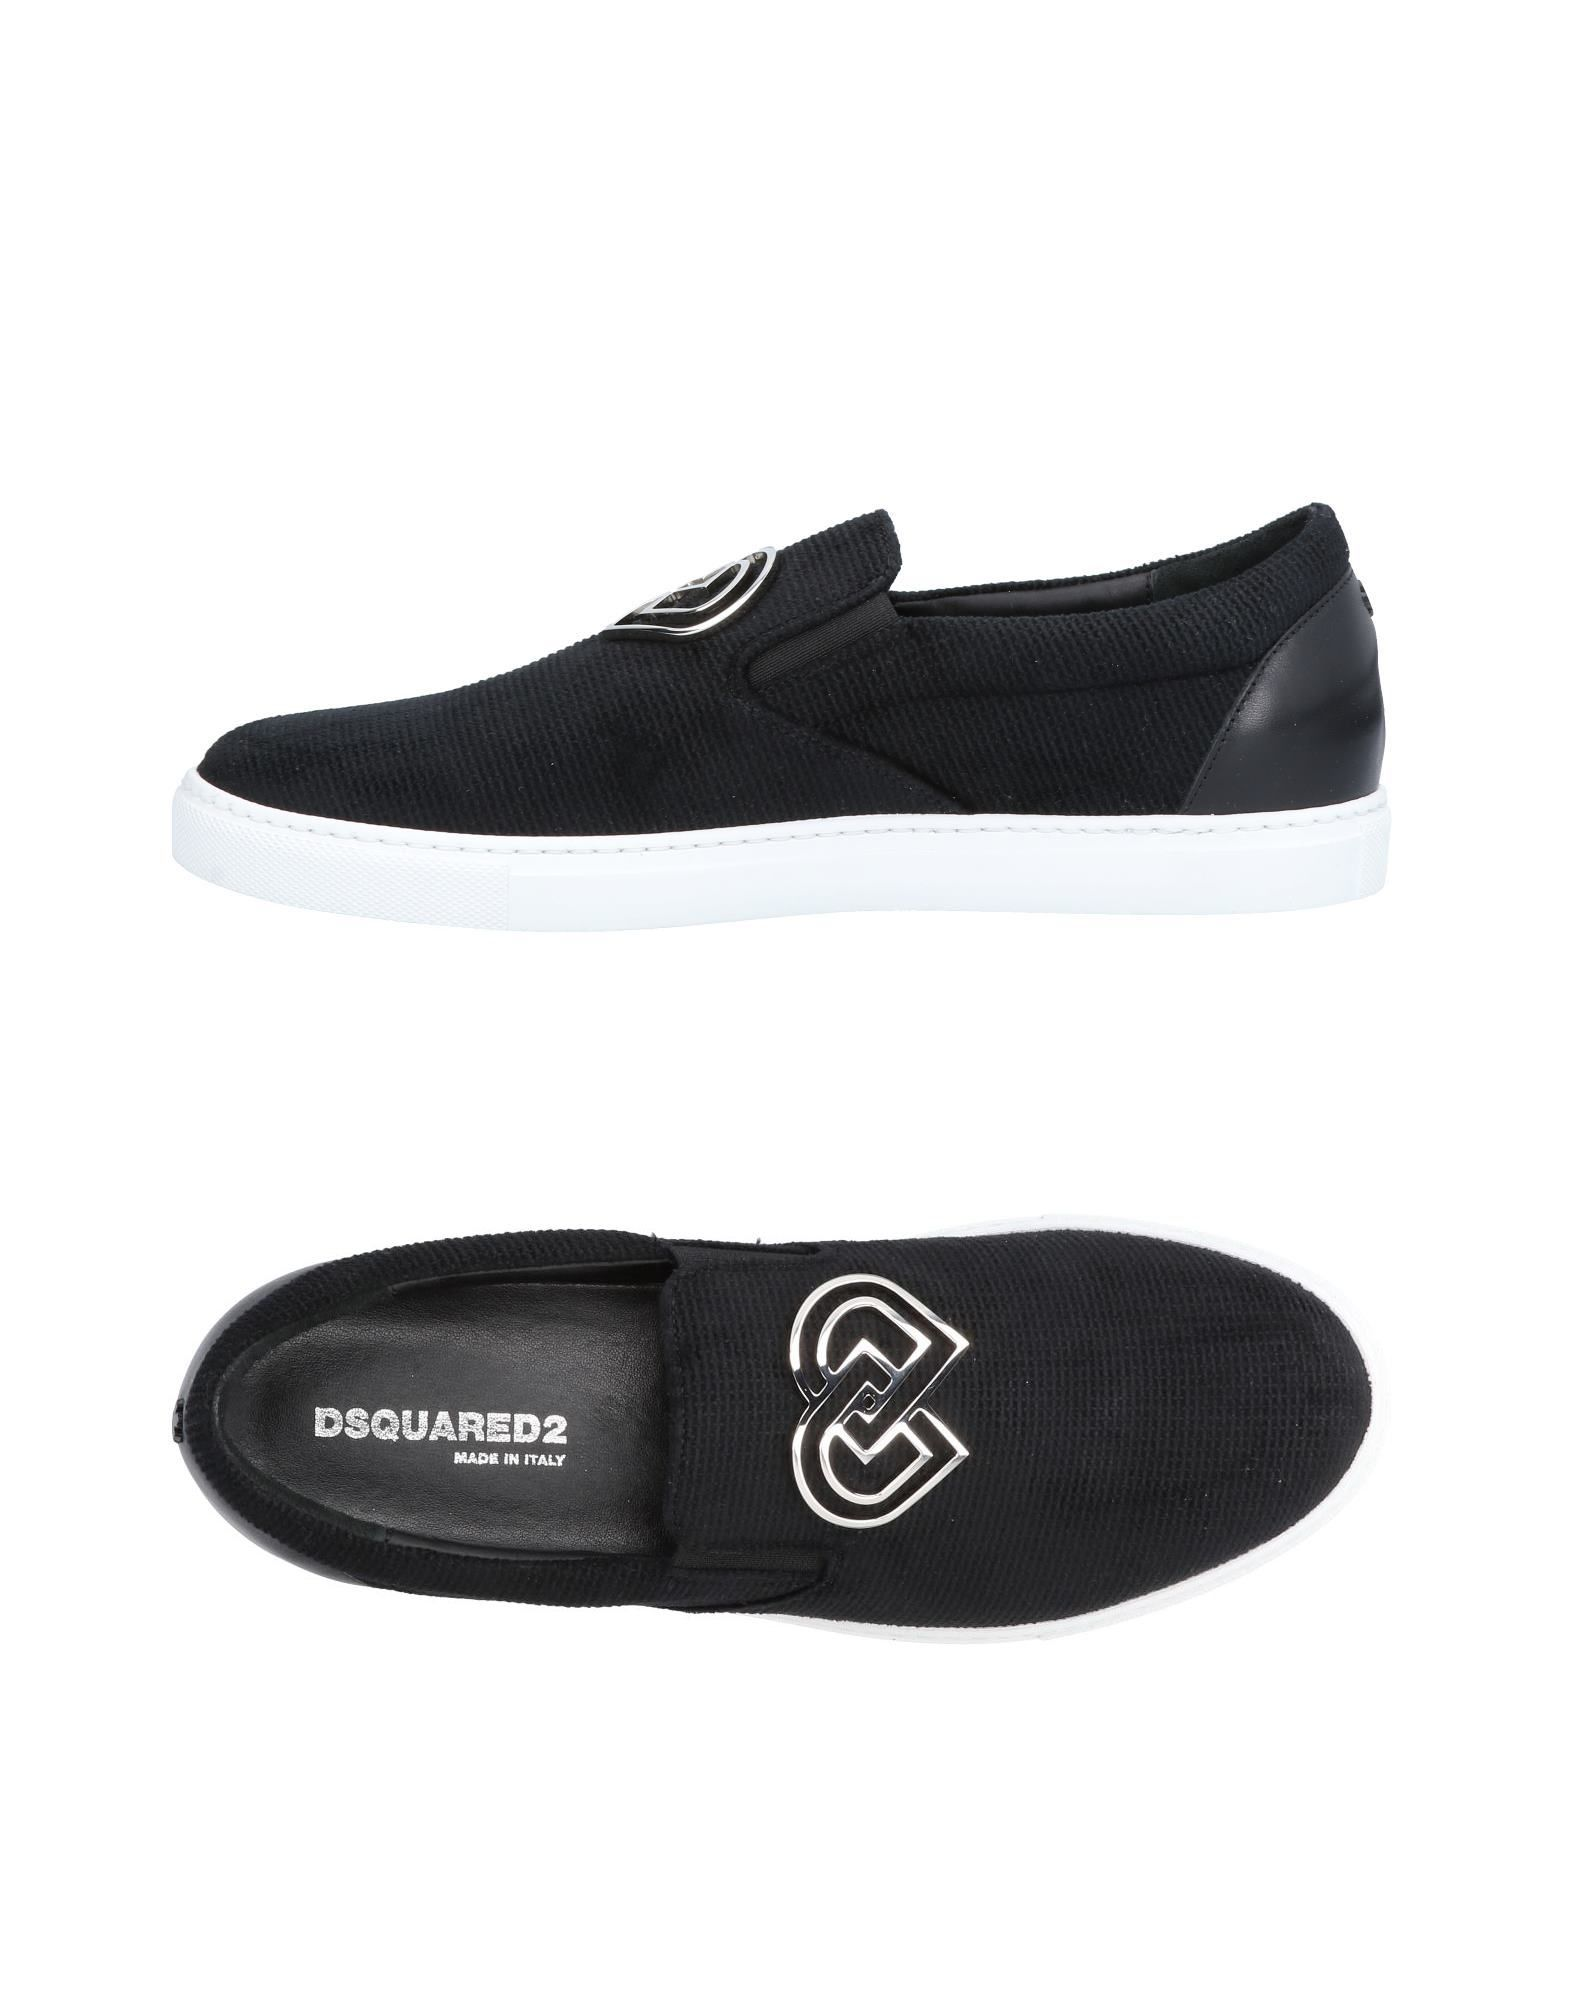 Dsquared2 on Sneakers - Men Dsquared2 Sneakers online on Dsquared2  Canada - 11482311GJ 095bbe